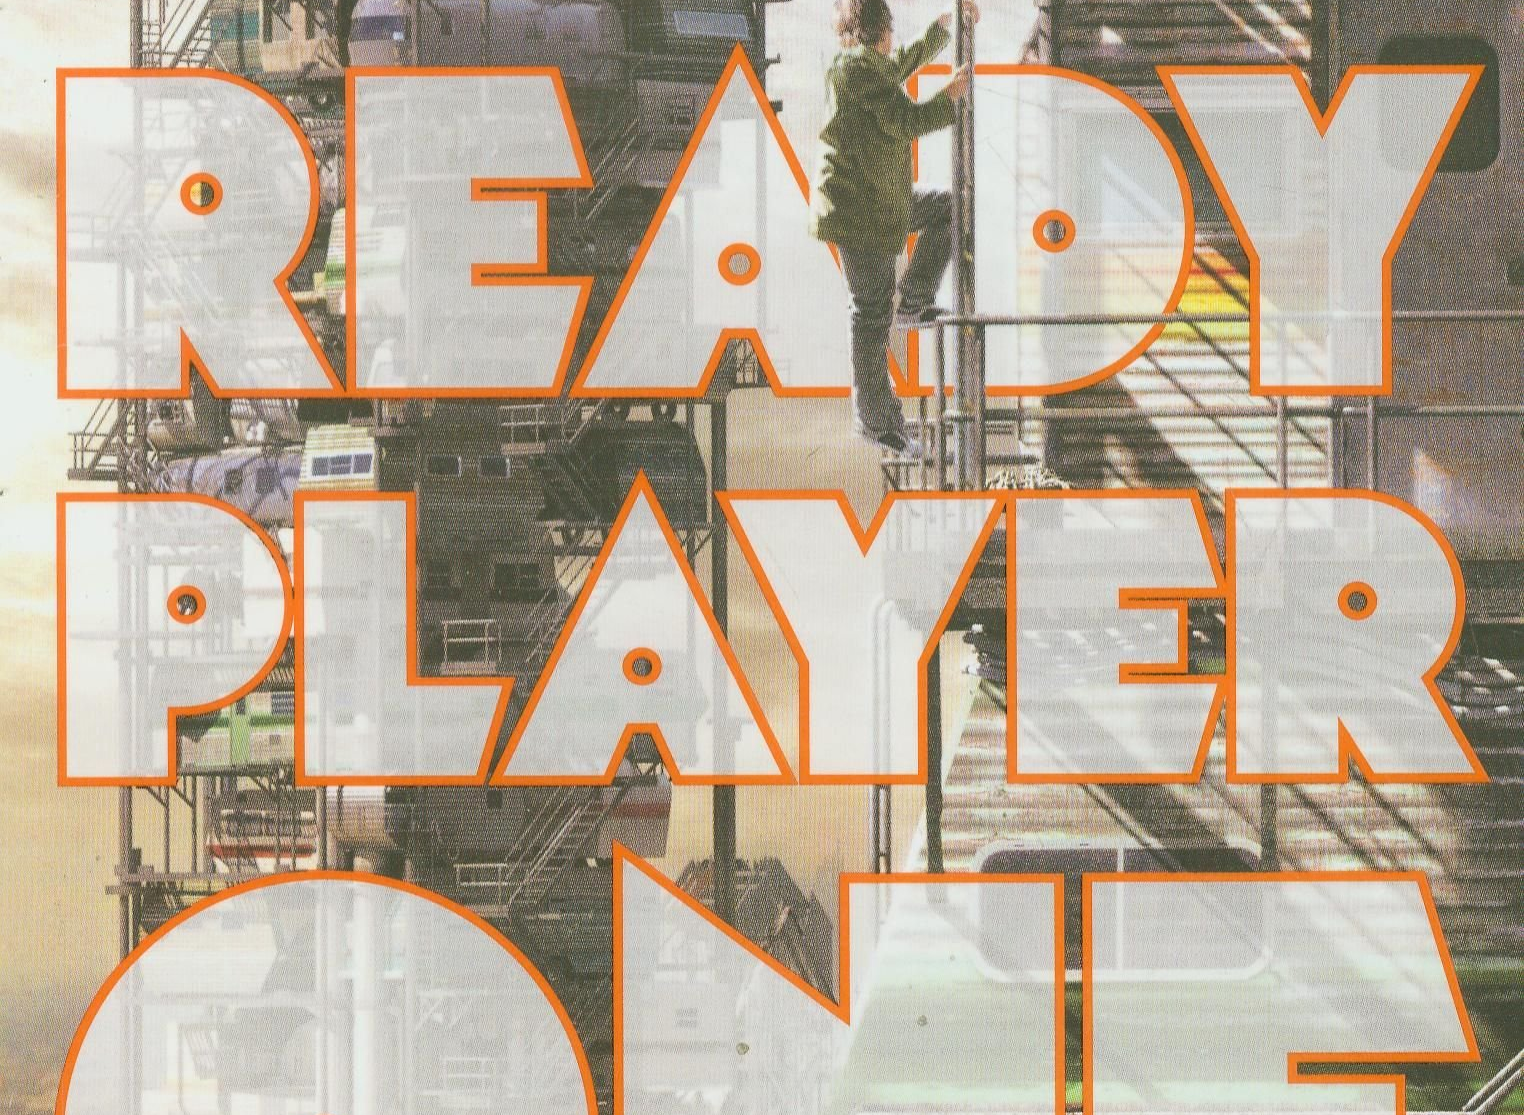 Ernest Cline trabaja en una secuela de Ready Player One